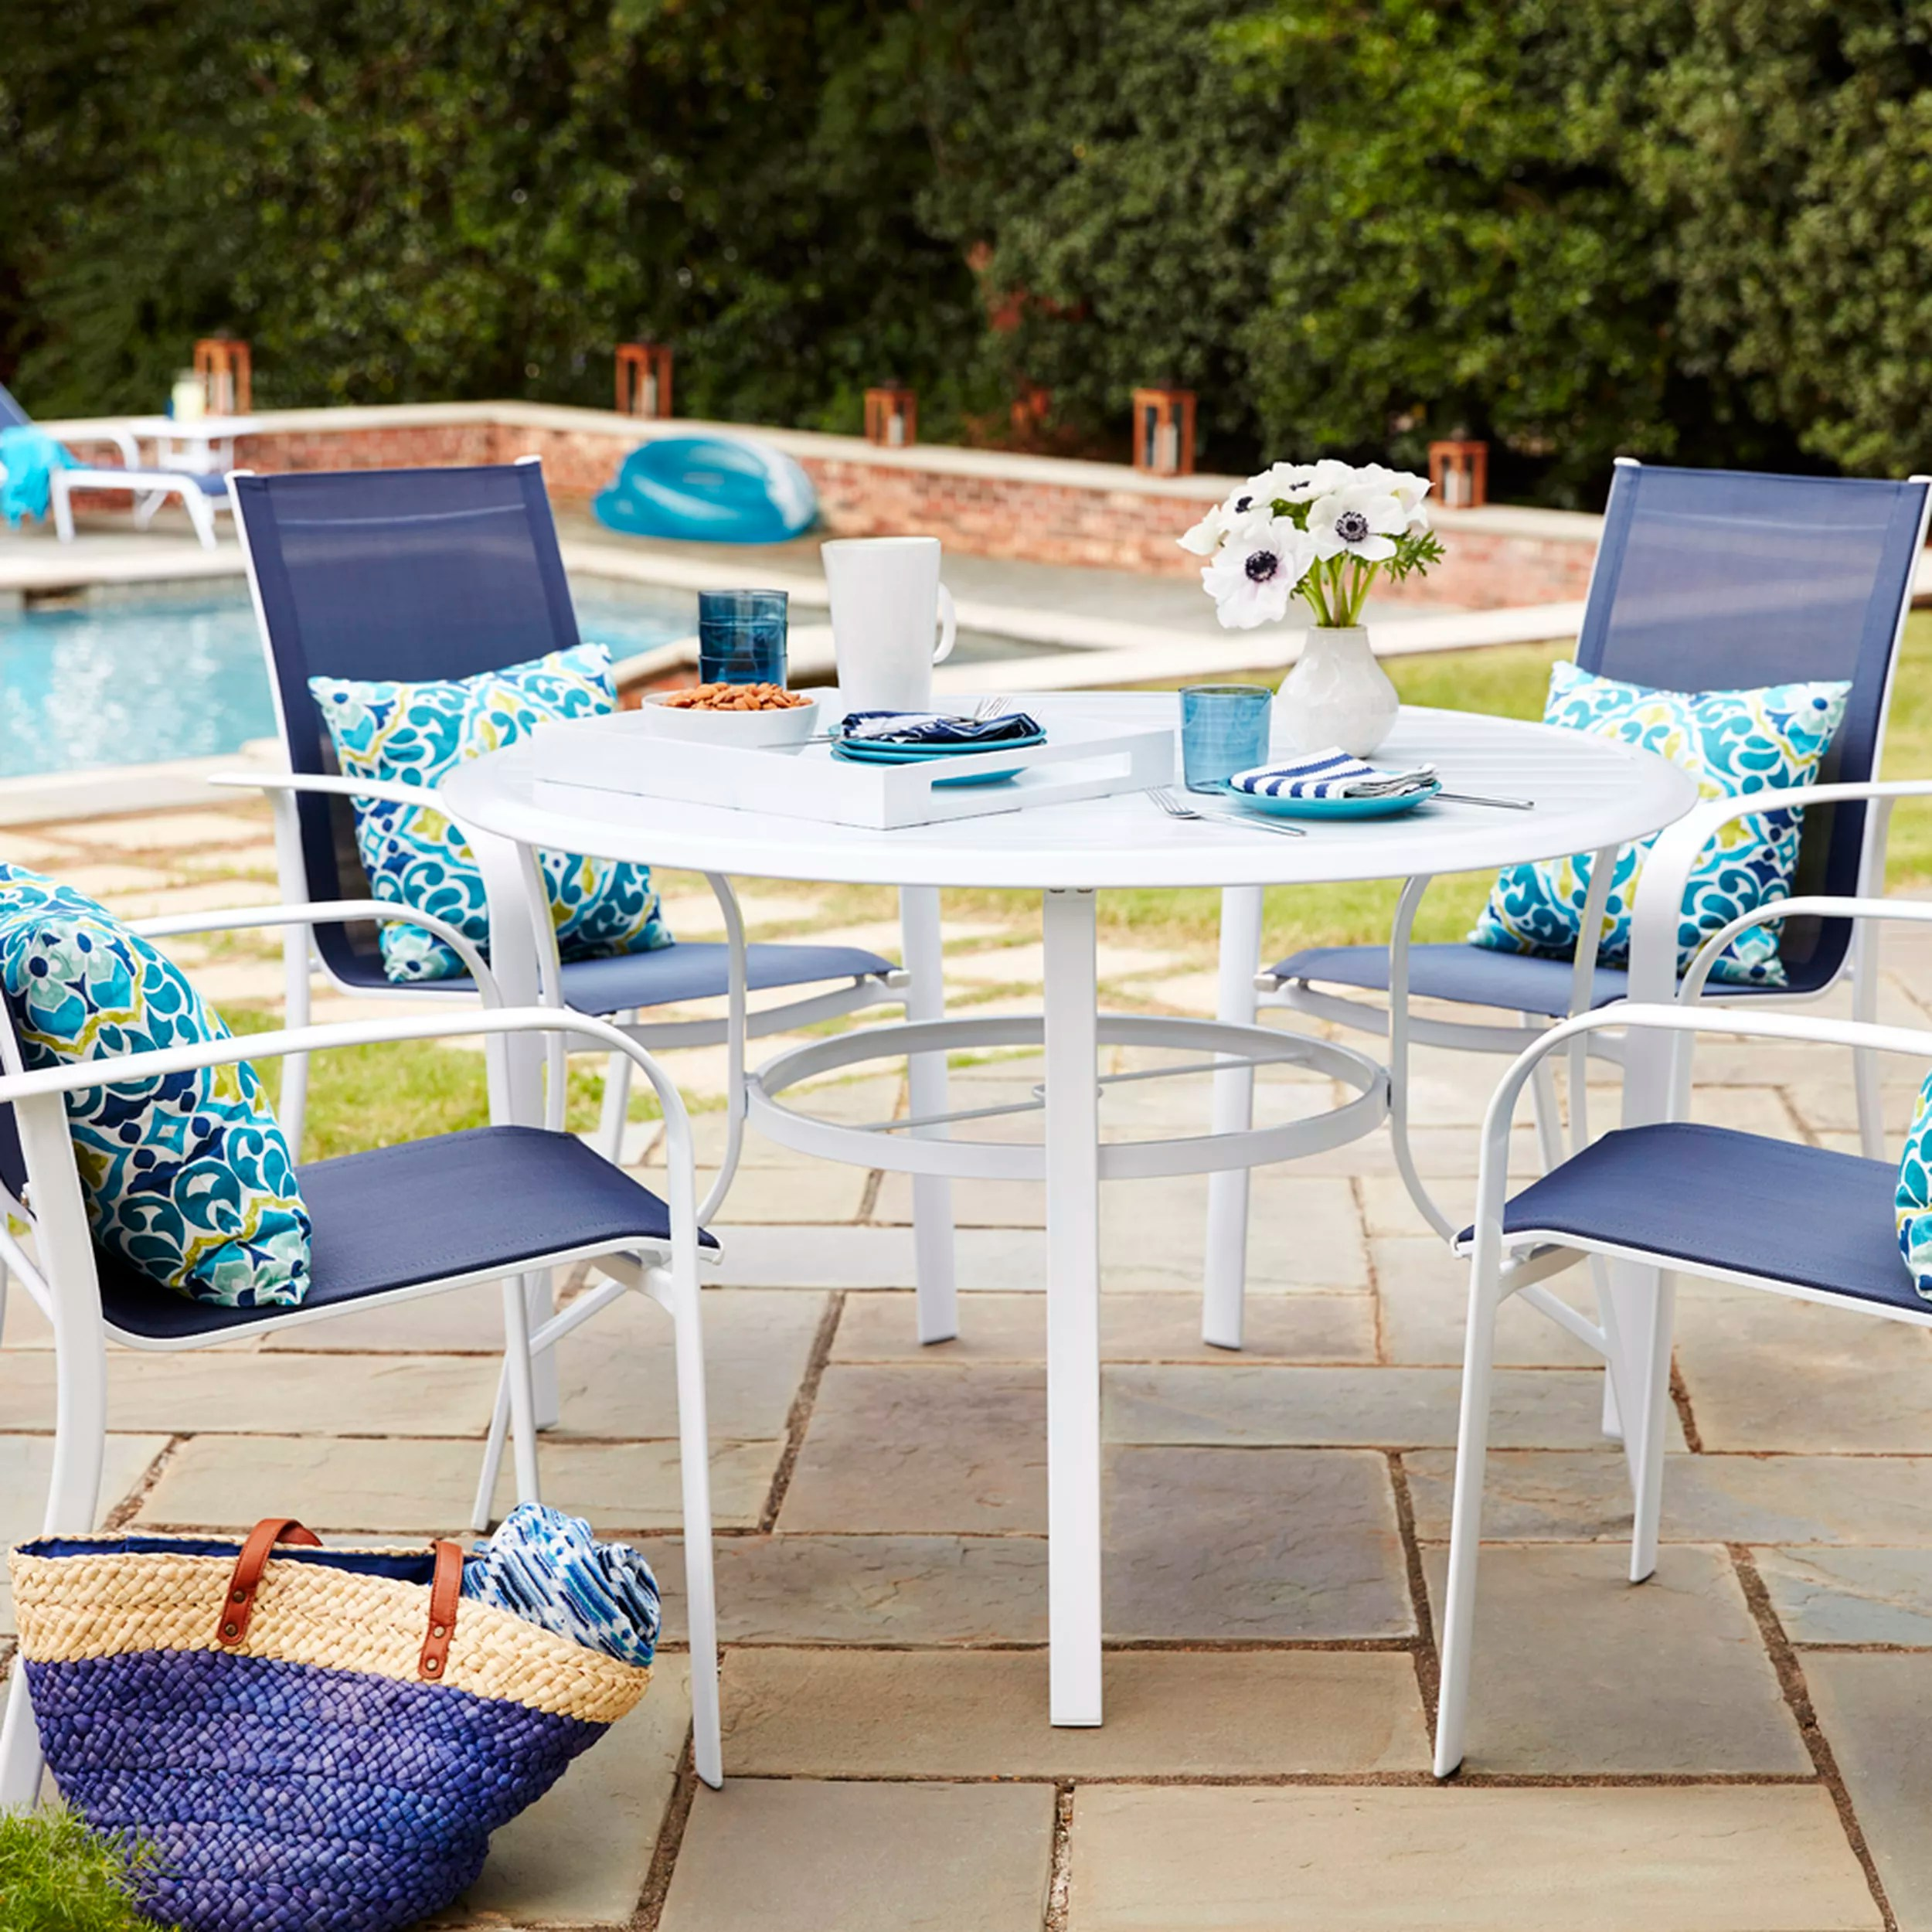 patio furniture experts give tips for